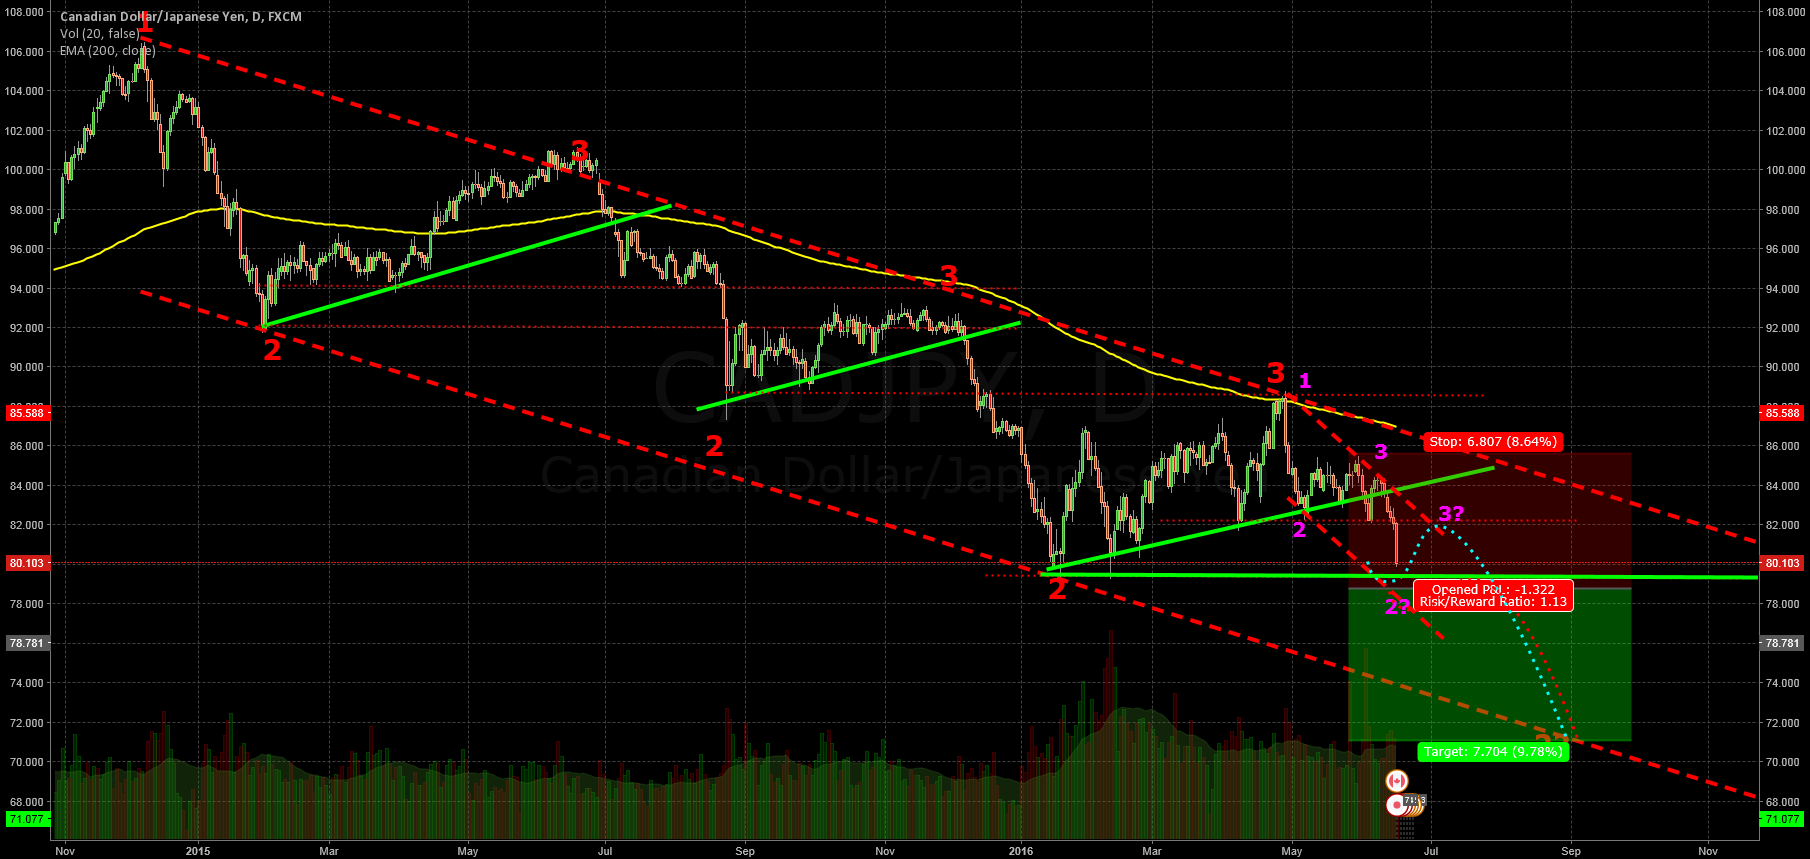 New cyclical Low?